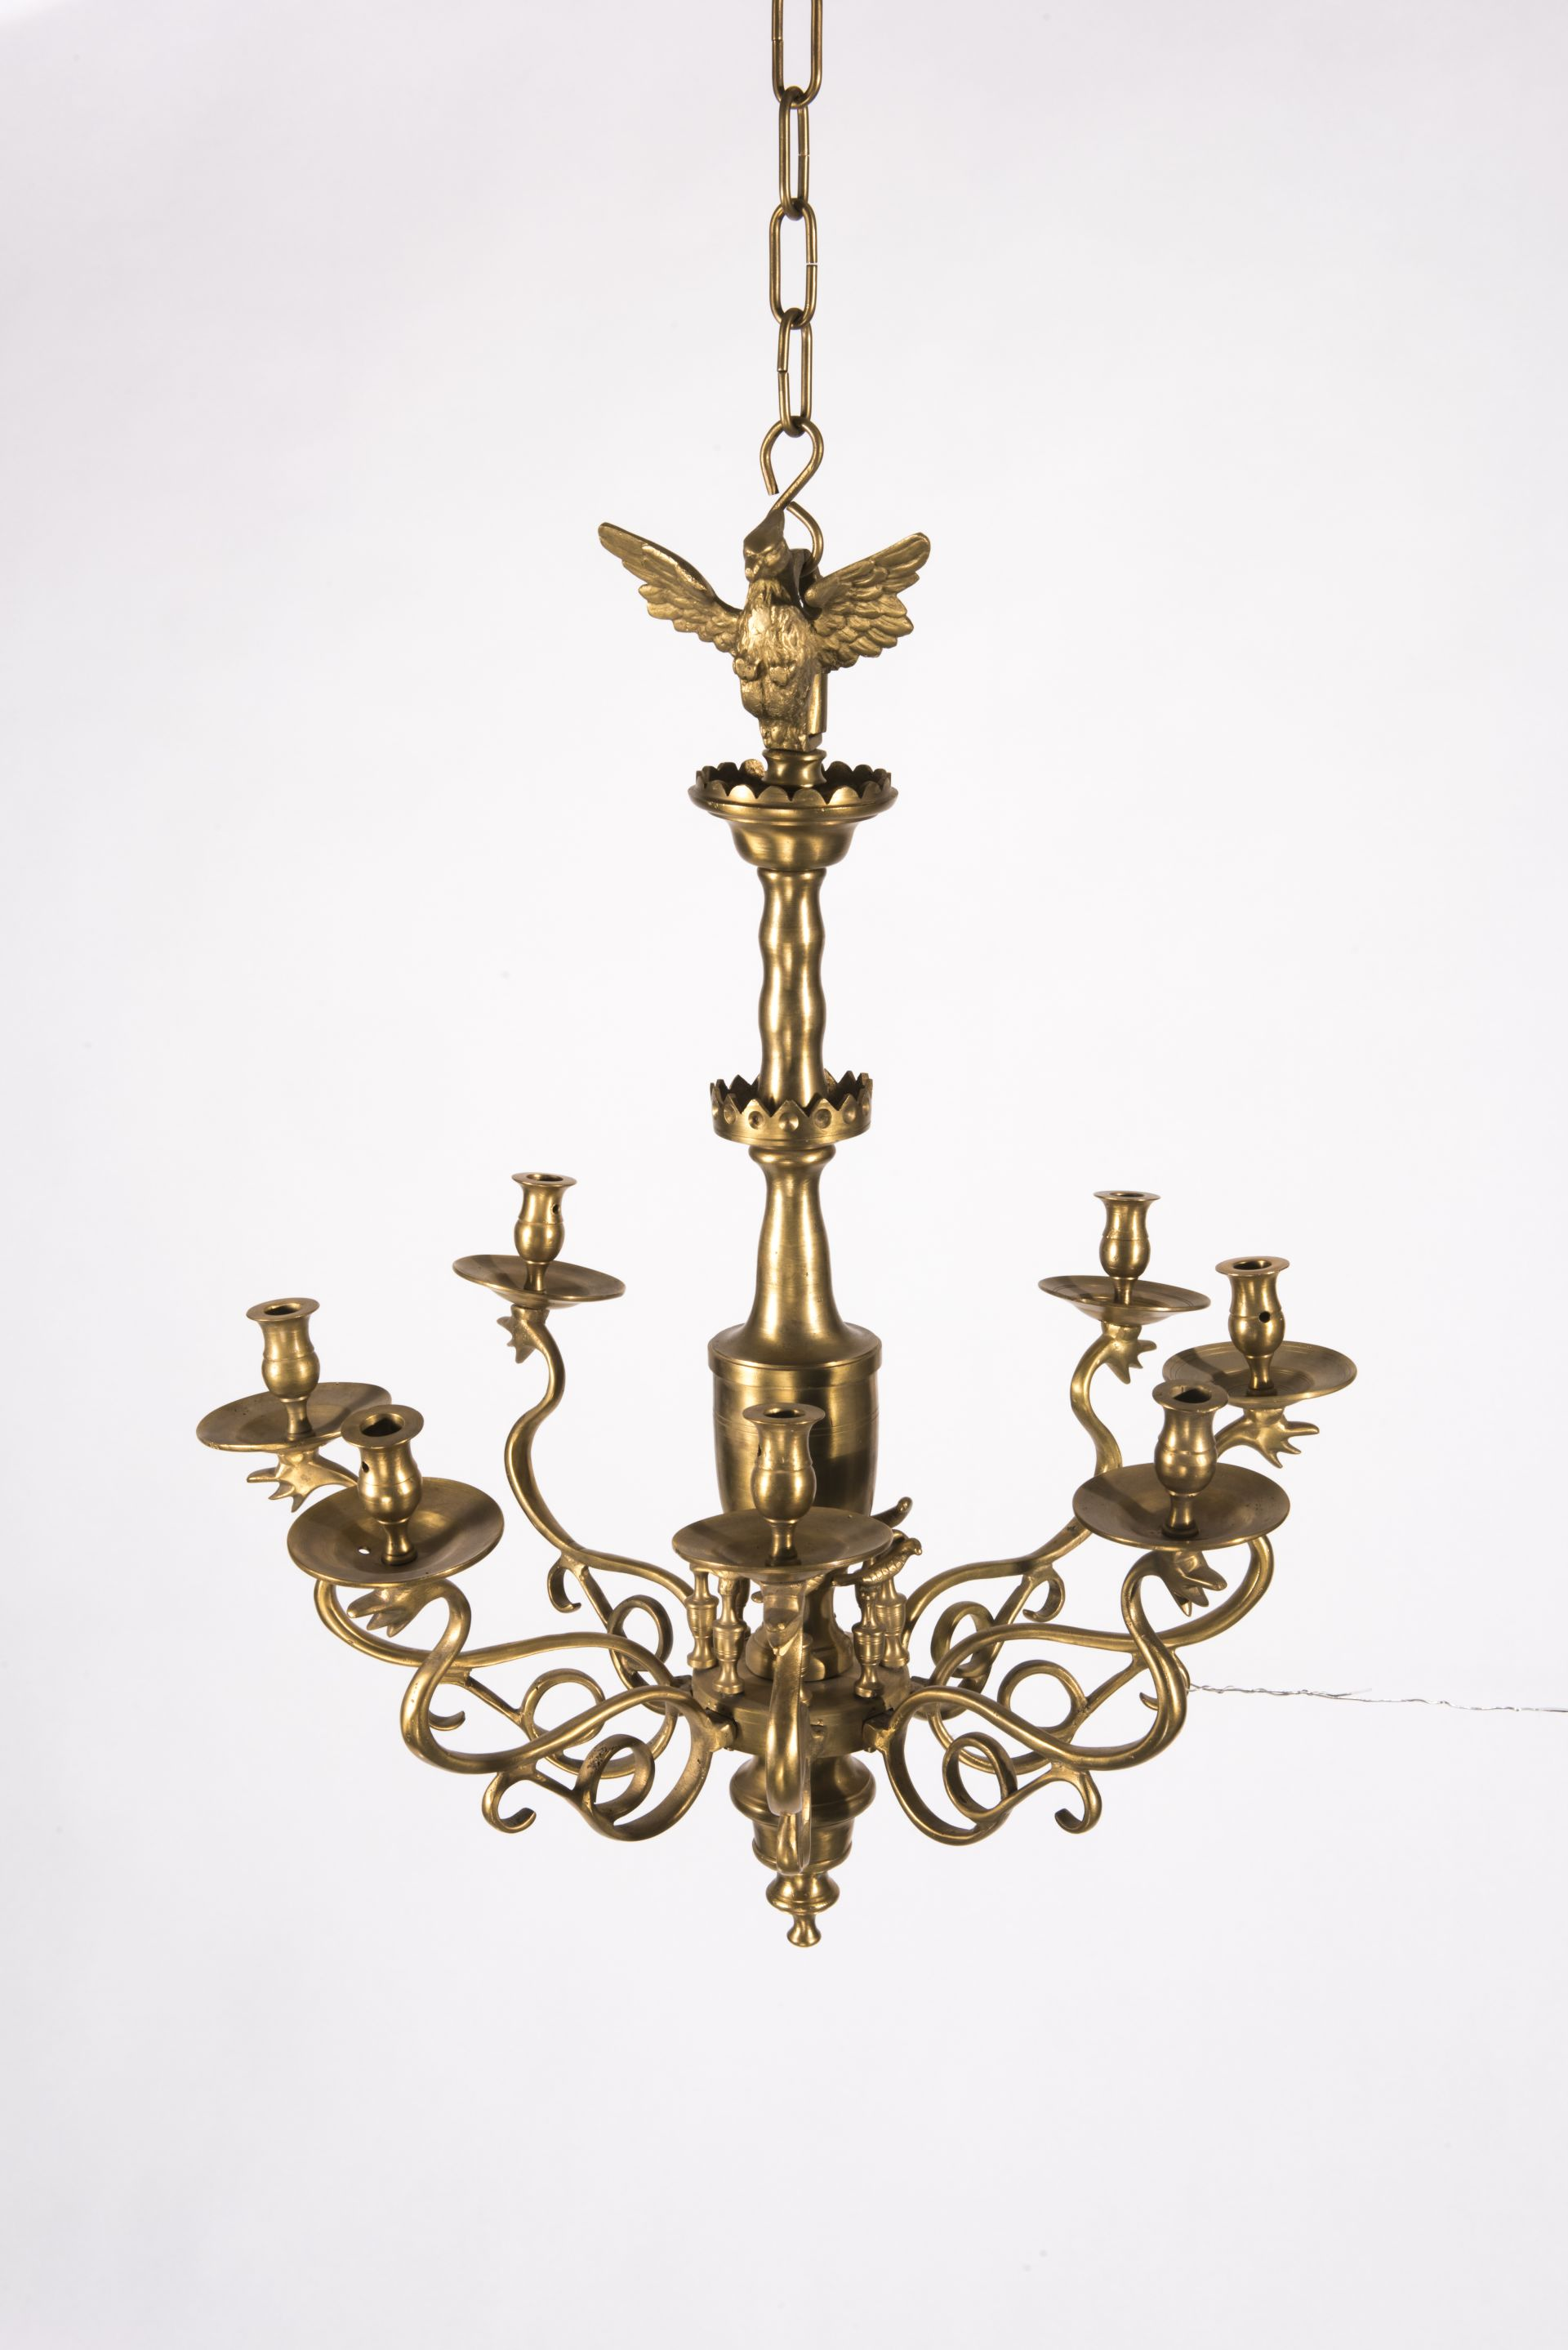 Chandelier, 1587–1649 (?) / 1850–1945 (?), National Museum of Lithuania, IM-13029. Photo by Kęstutis Stoškus, 2017